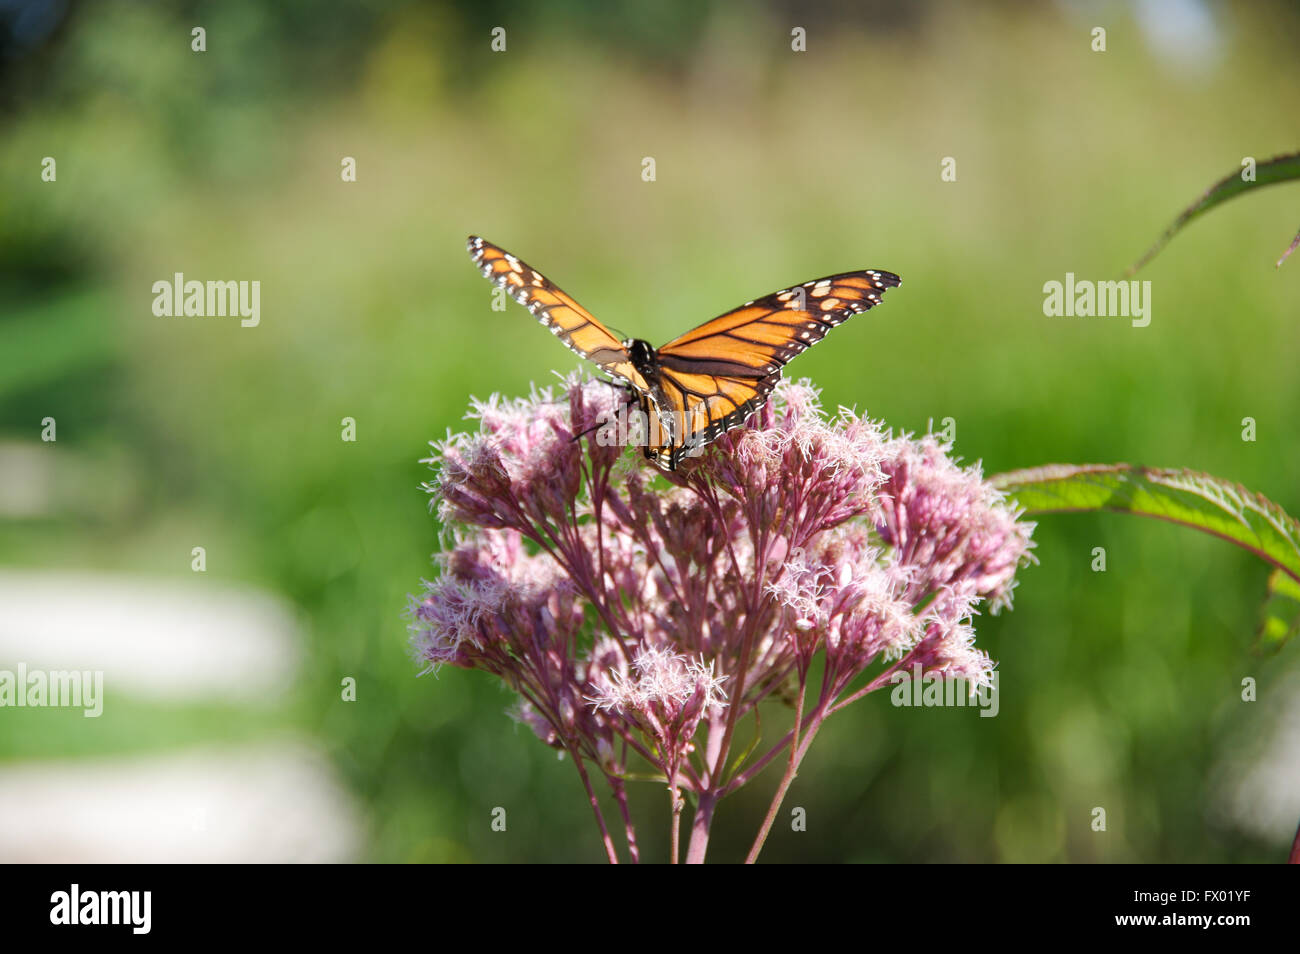 Monarch butterfly (Danaus plexippus) on Joe Pye Weed  (Empatorium purpureum) - Stock Image